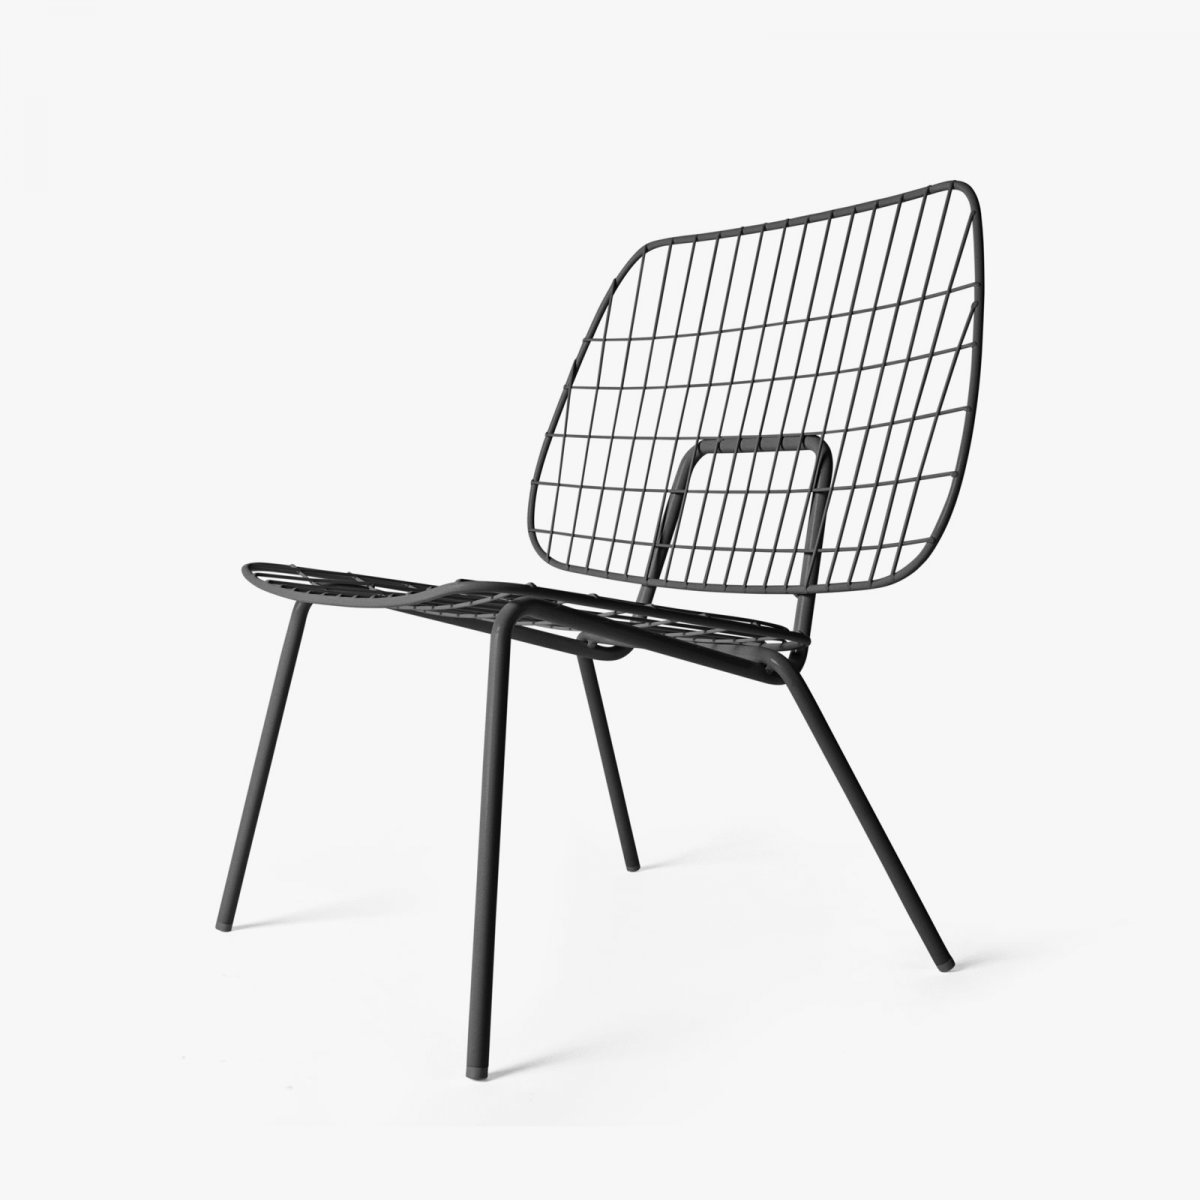 WM String Lounge Chair, black.